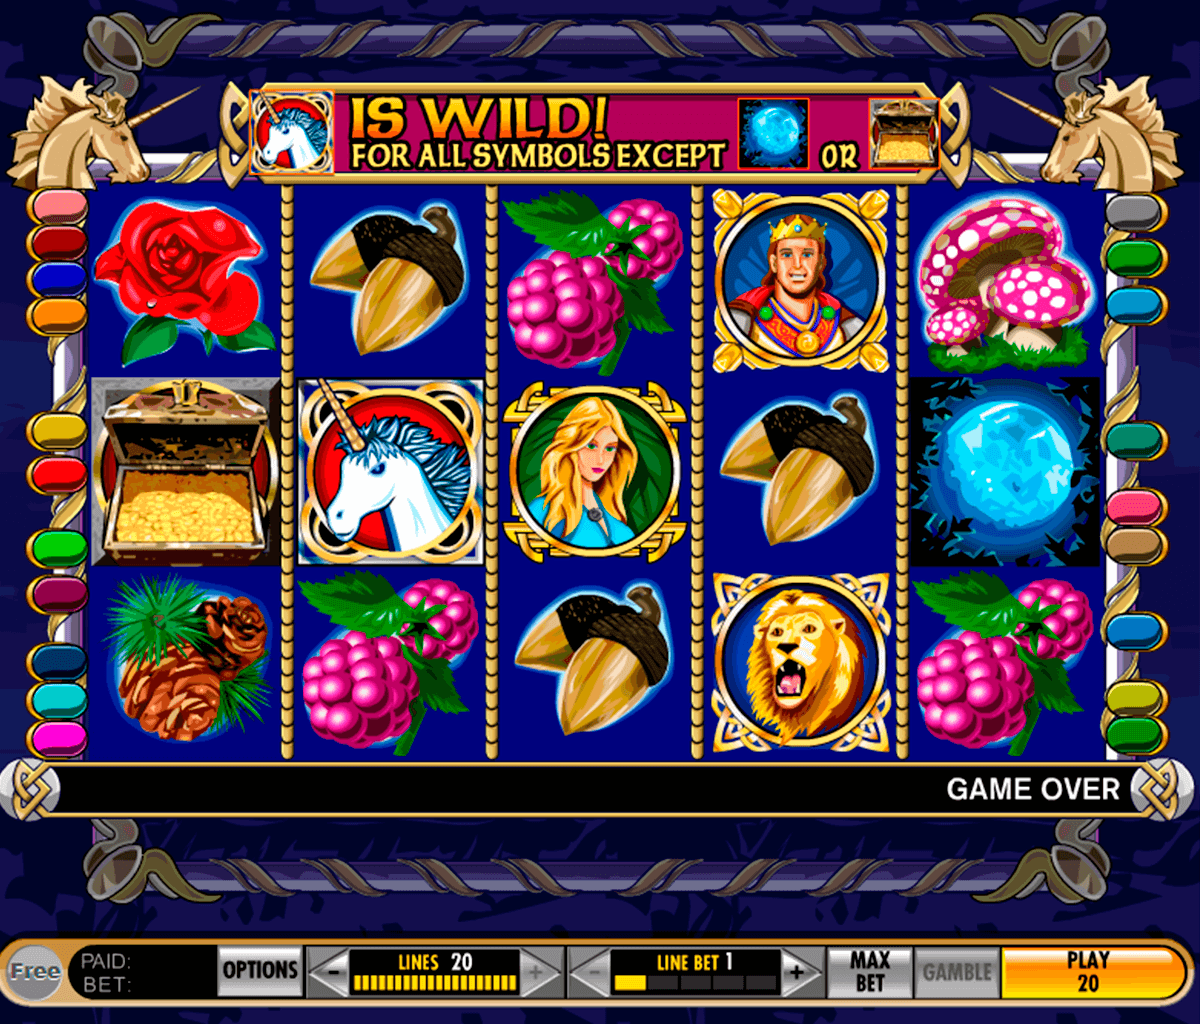 Giros gratis Chile penny slot machines 310515